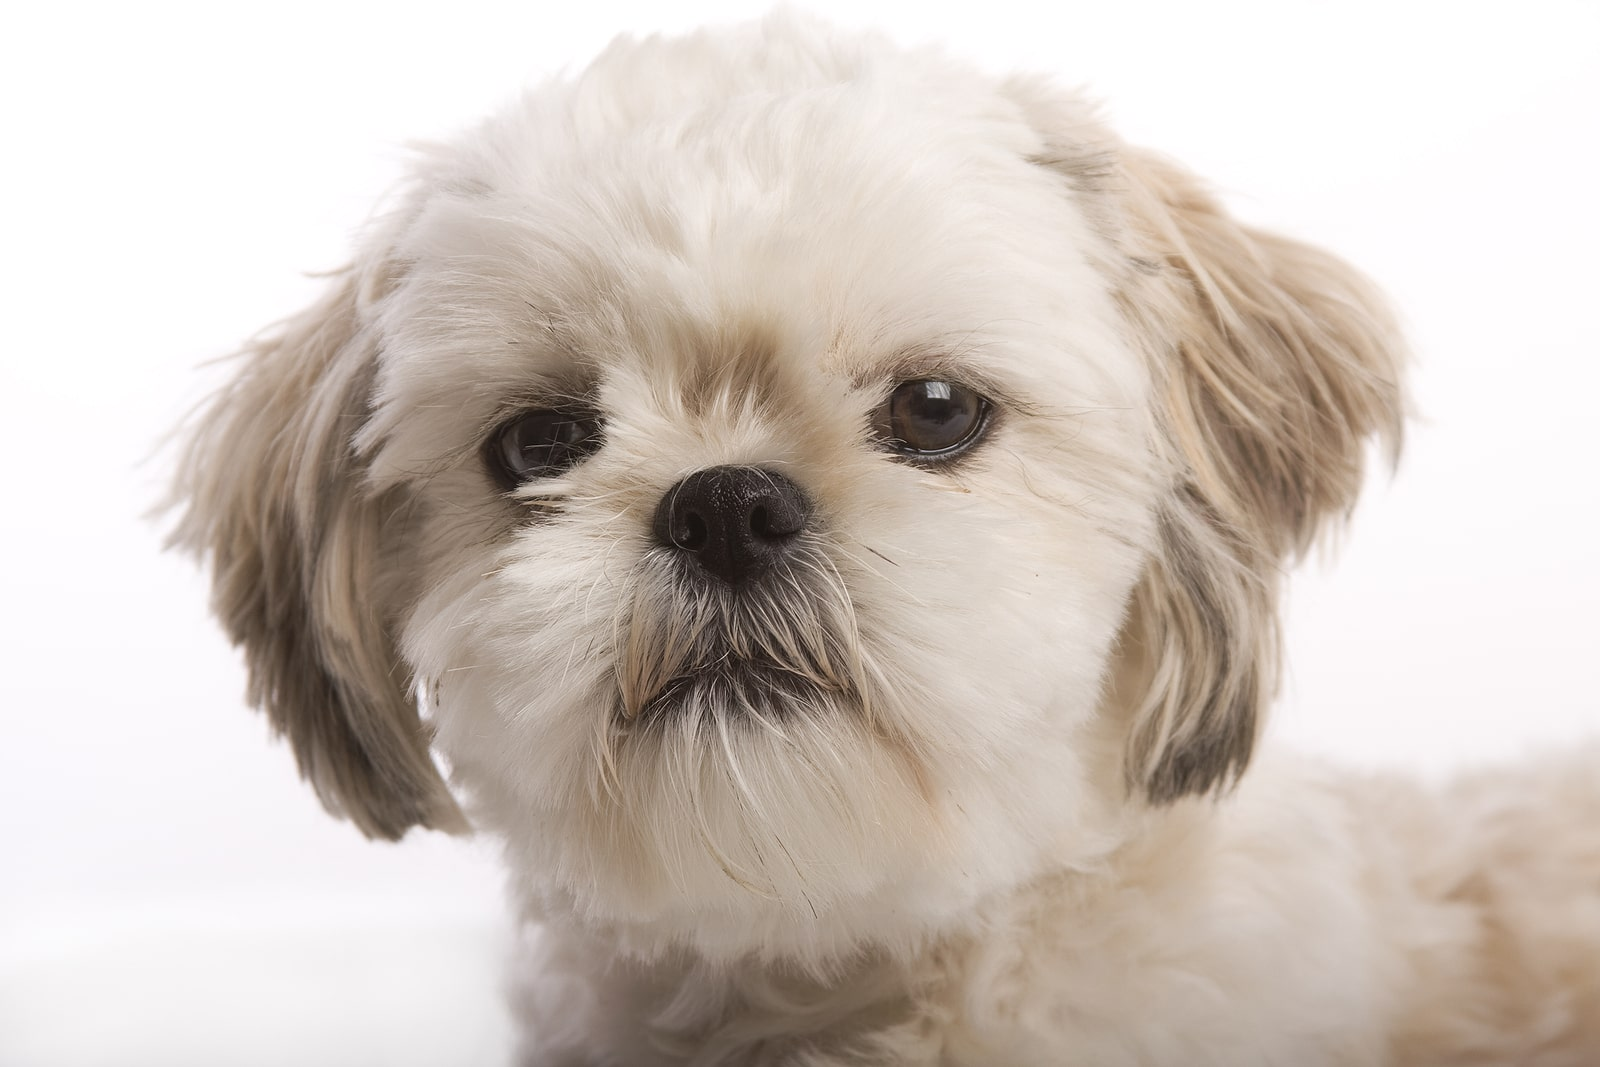 How To Clean Shih Tzu's Eyes And Tear Stains